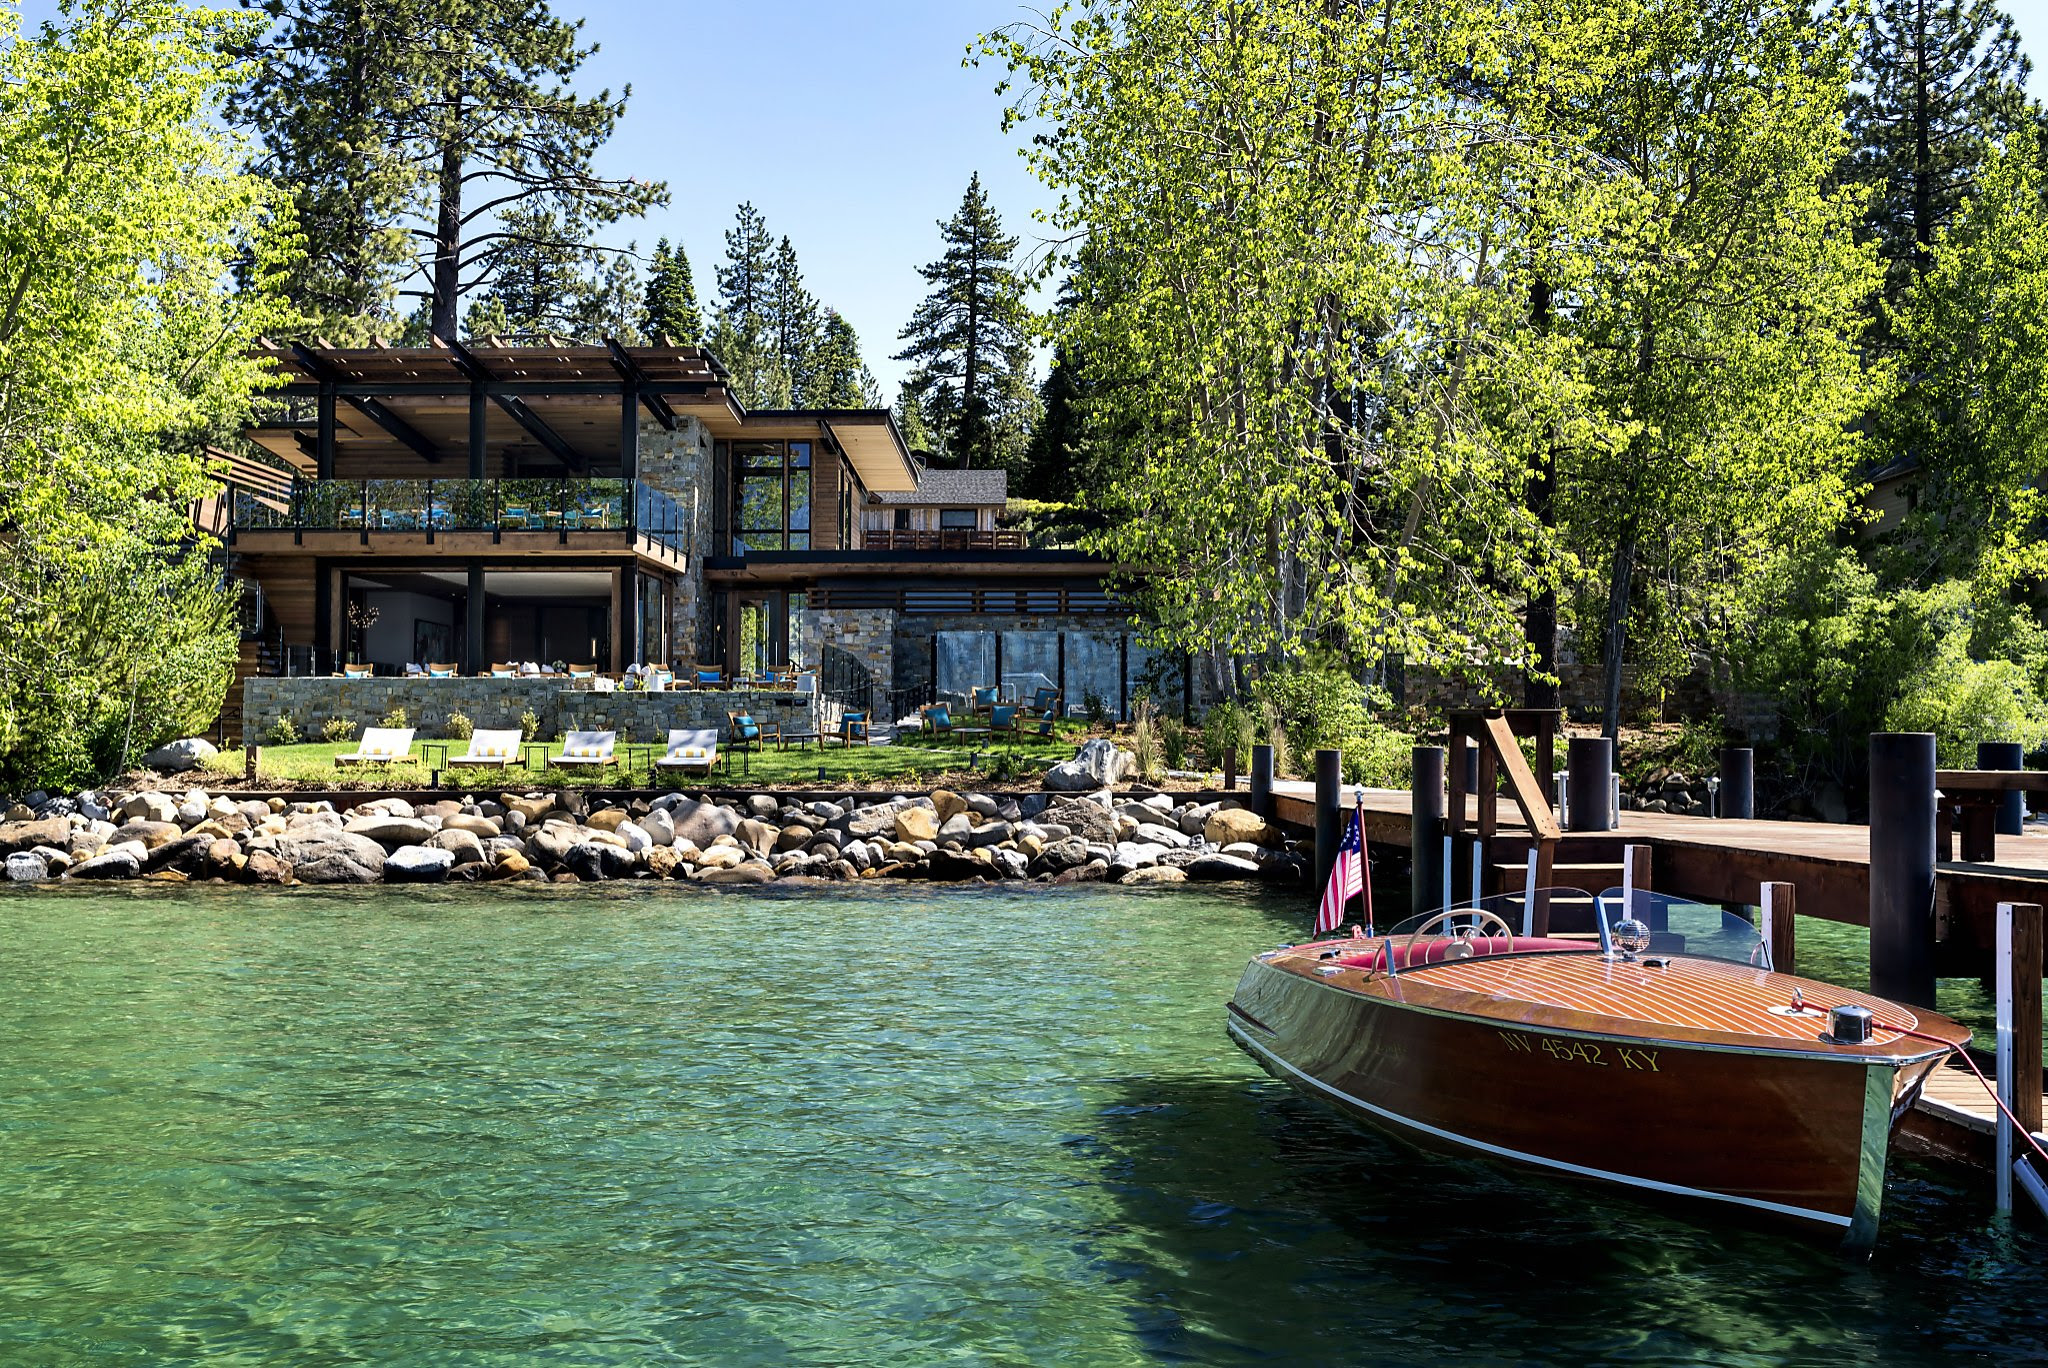 RitzCarlton Lake Tahoe opens exclusive lakefront